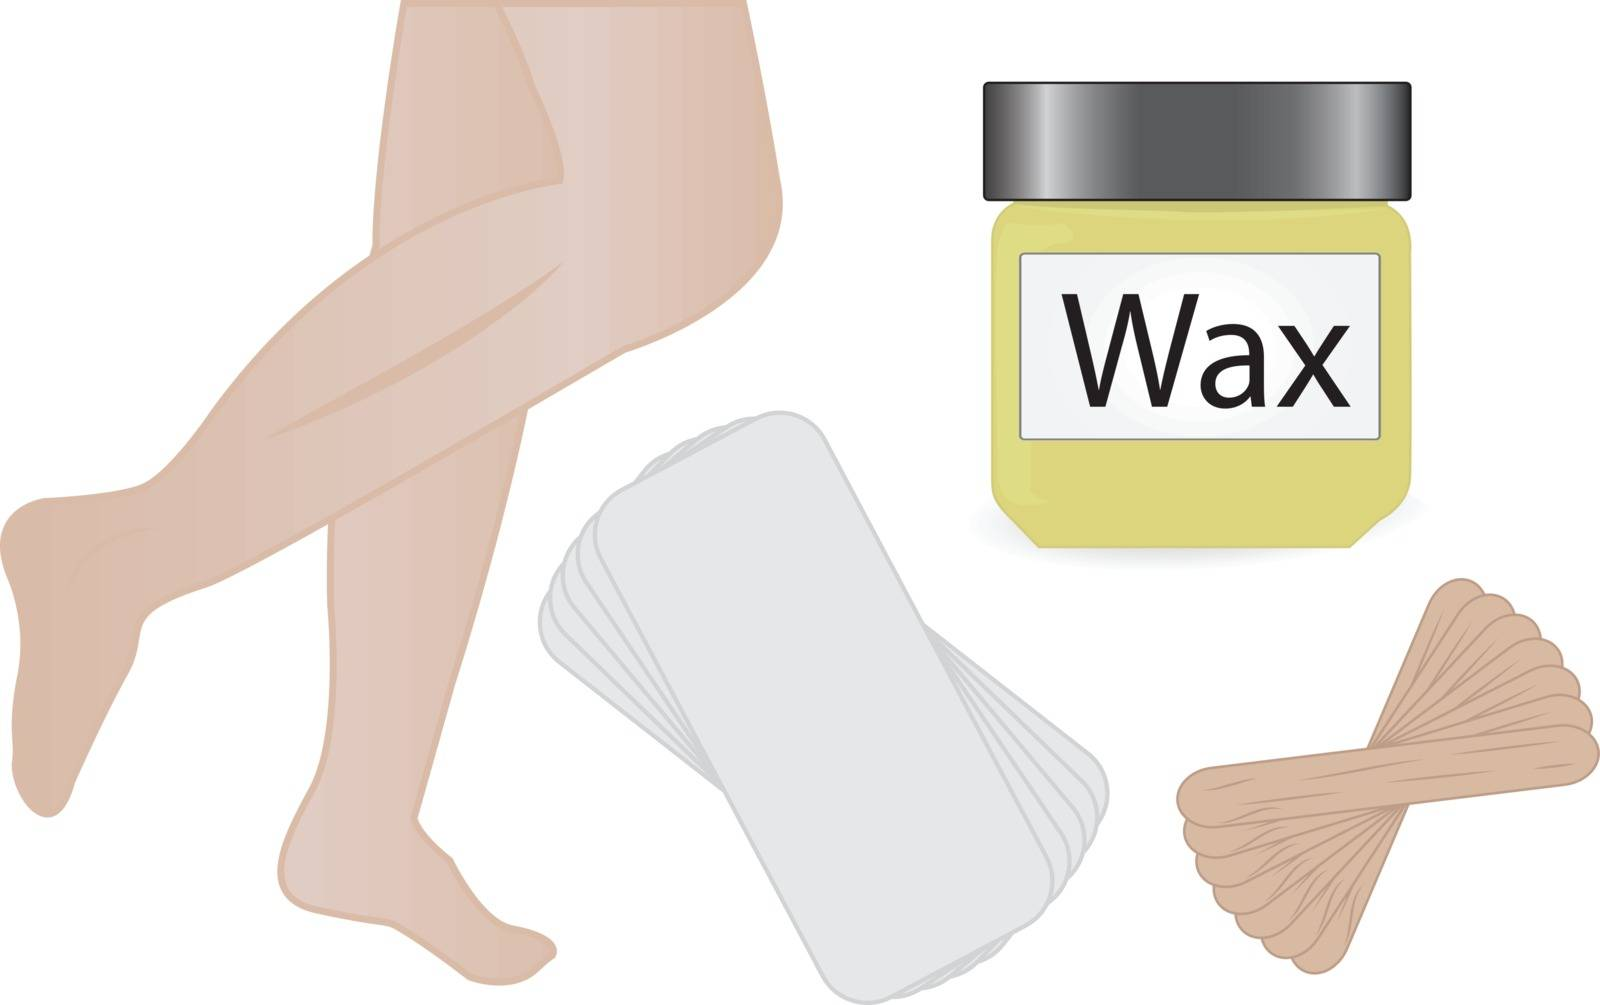 Wax hair removal vector illustration by Olena758